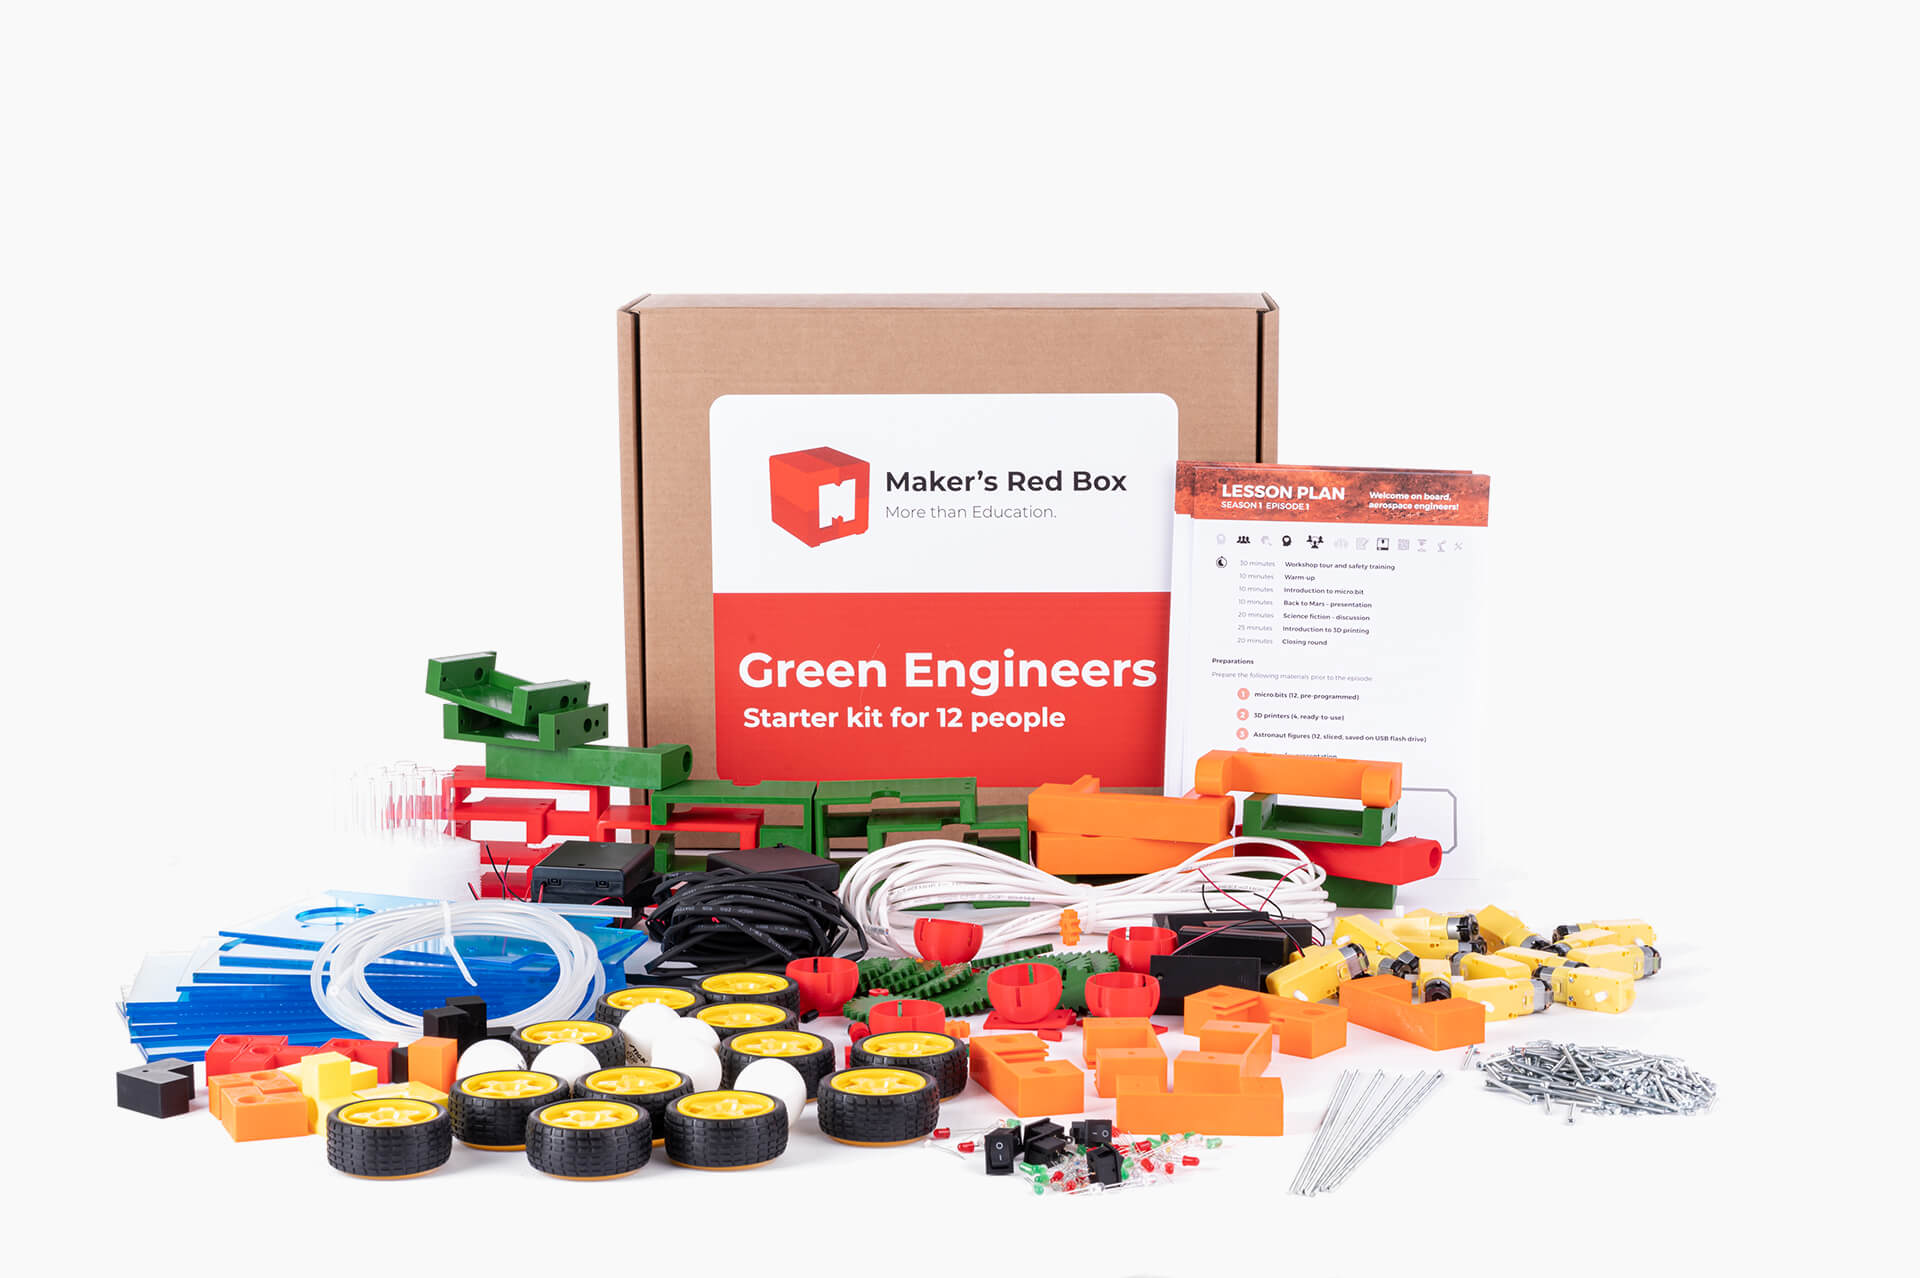 Green Engineers Makers Red Box 3